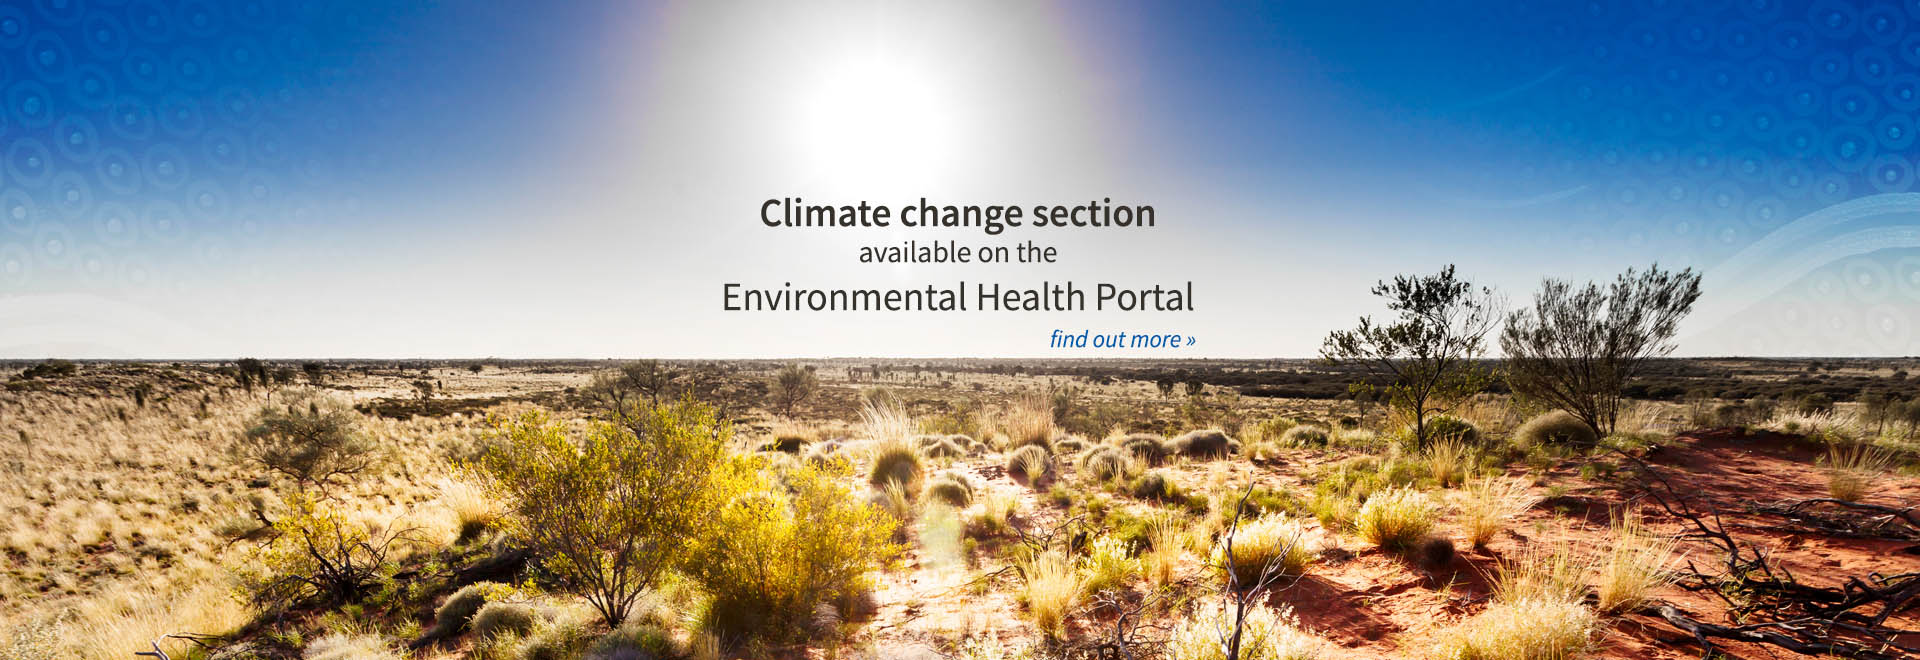 Climate change section